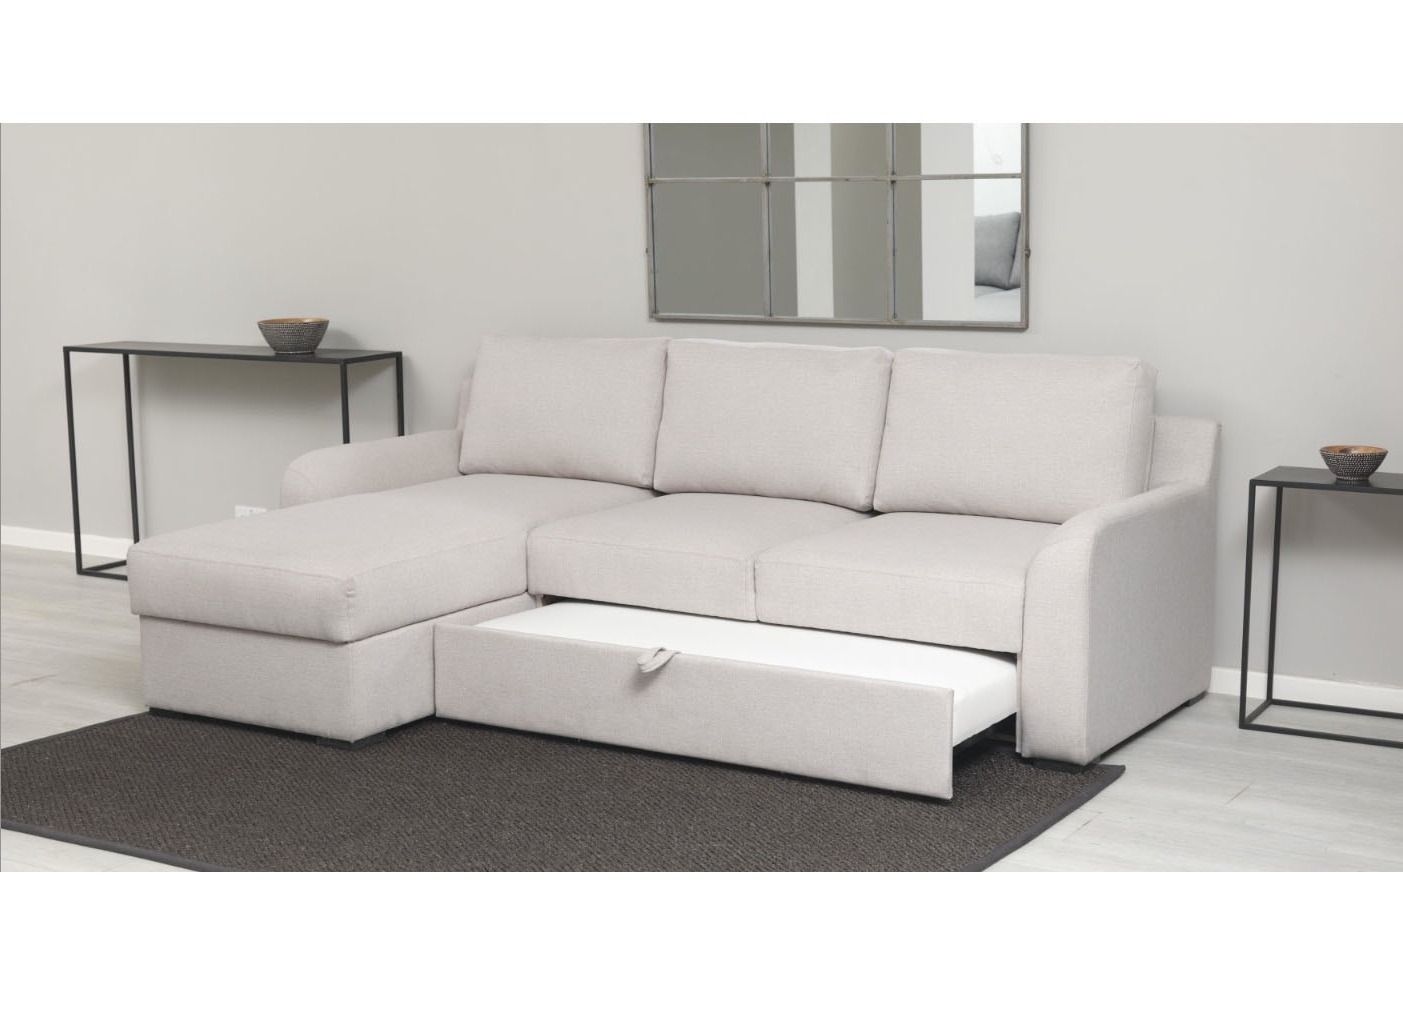 Corner Sofa Bed With Storage – Mforum With Trendy Chaise Sofa Beds With Storage (View 7 of 15)